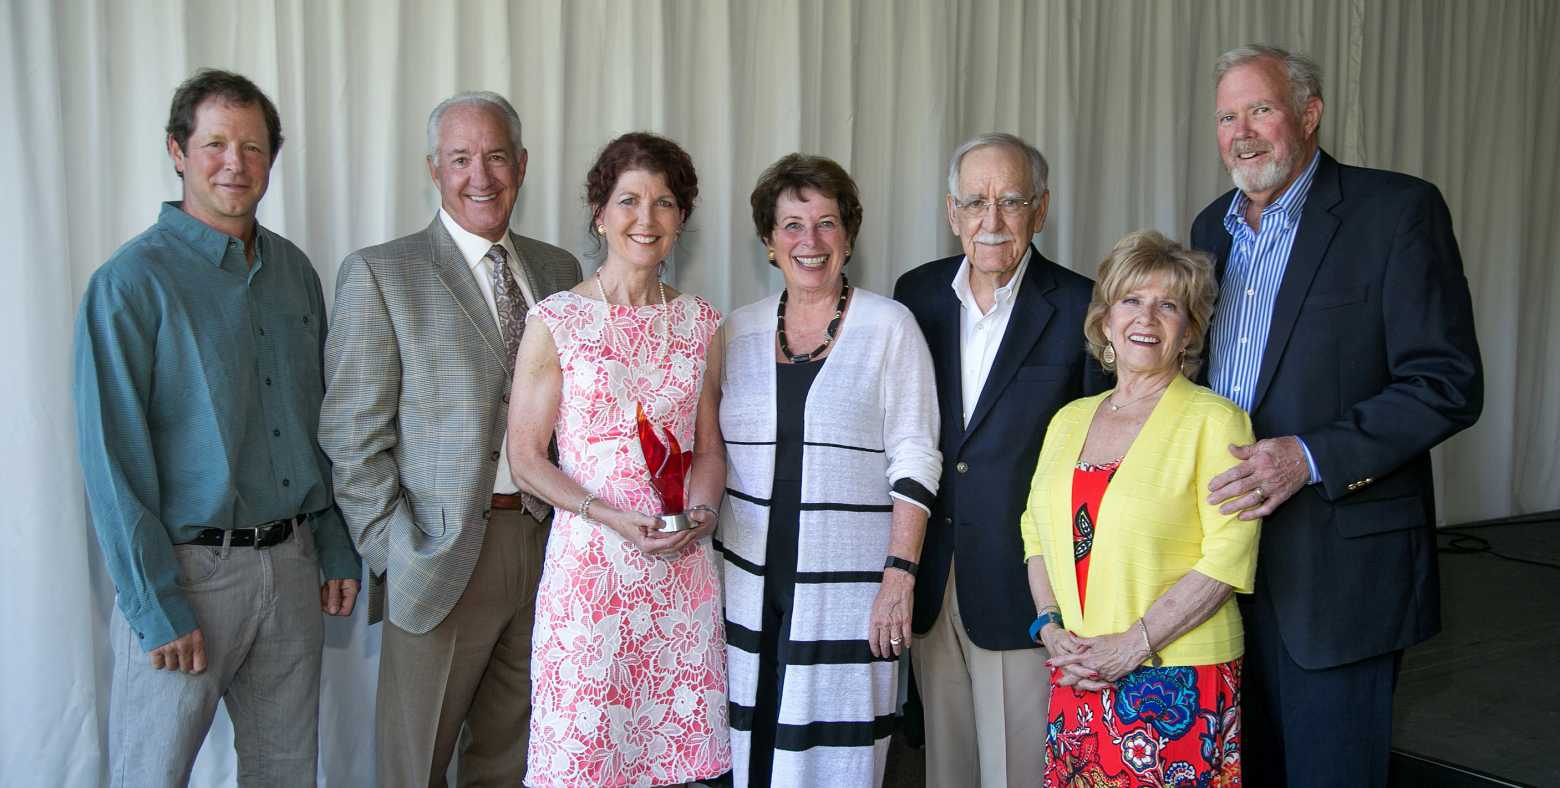 Karen Sessler with past Spirit of Giving Award recipients: Billy McCullough, Randy Hill, Pam Hobday, Patti Boxeth, Gary Boxeth